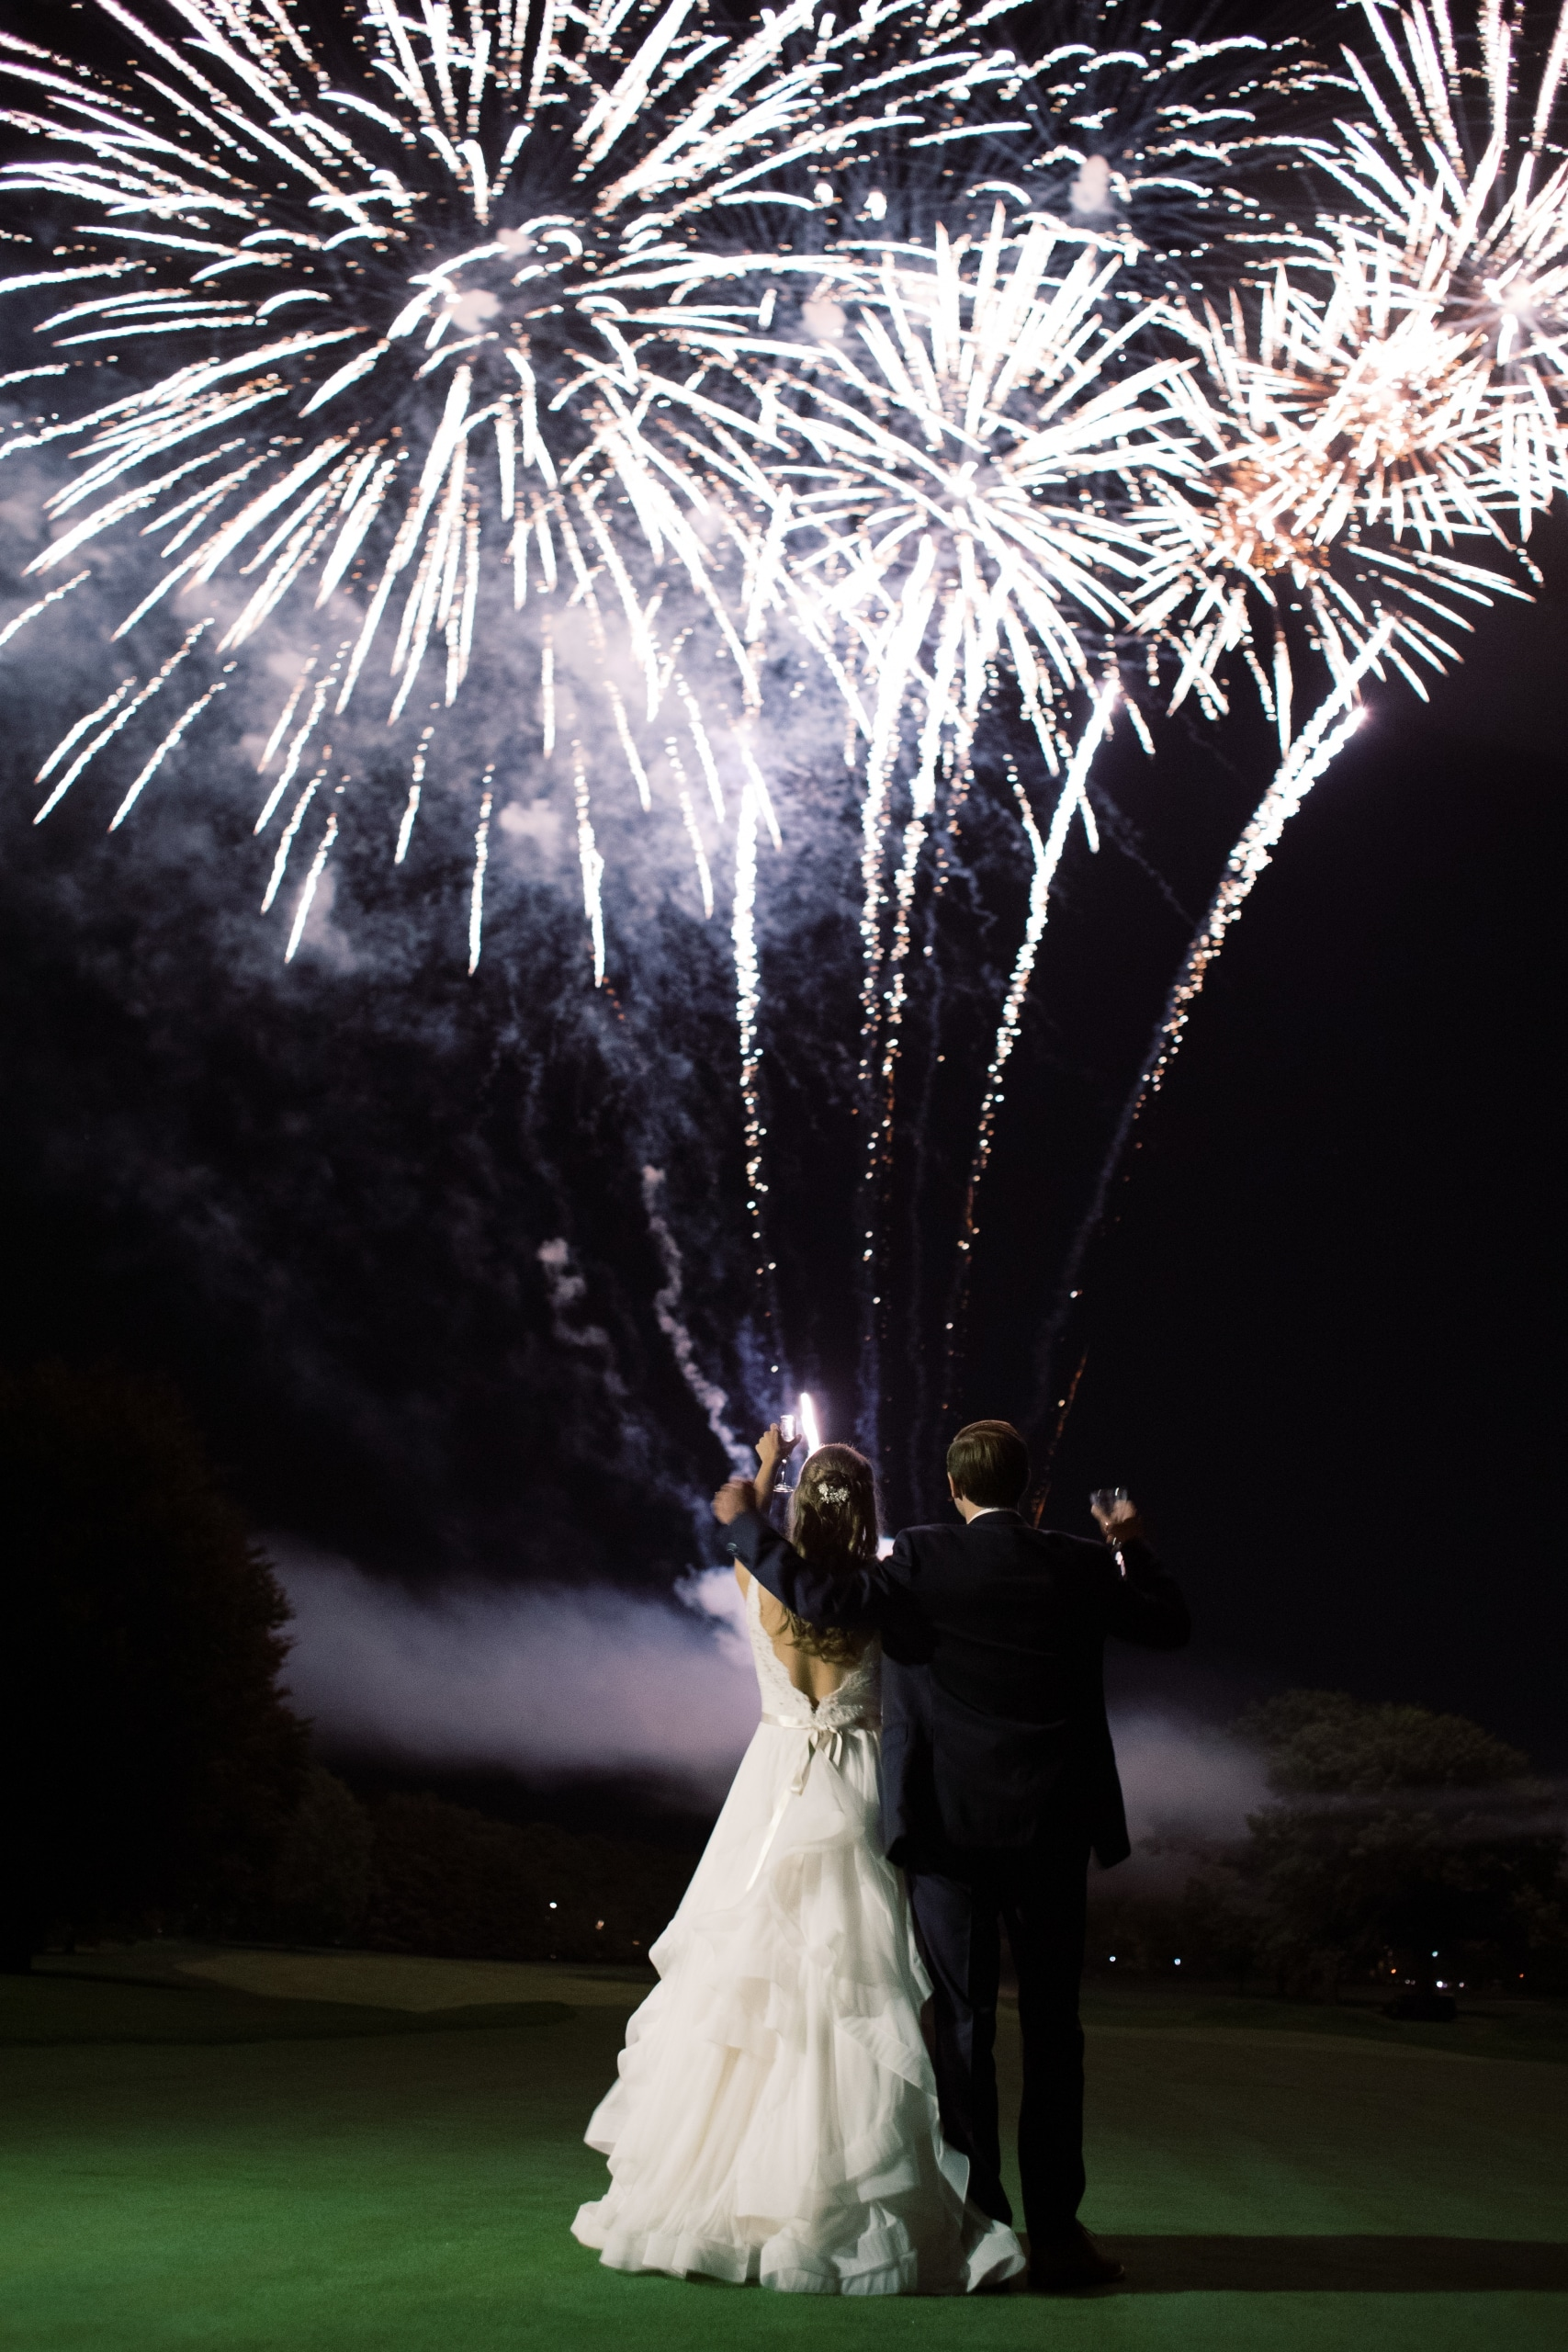 wedding fireworks with bride and groom